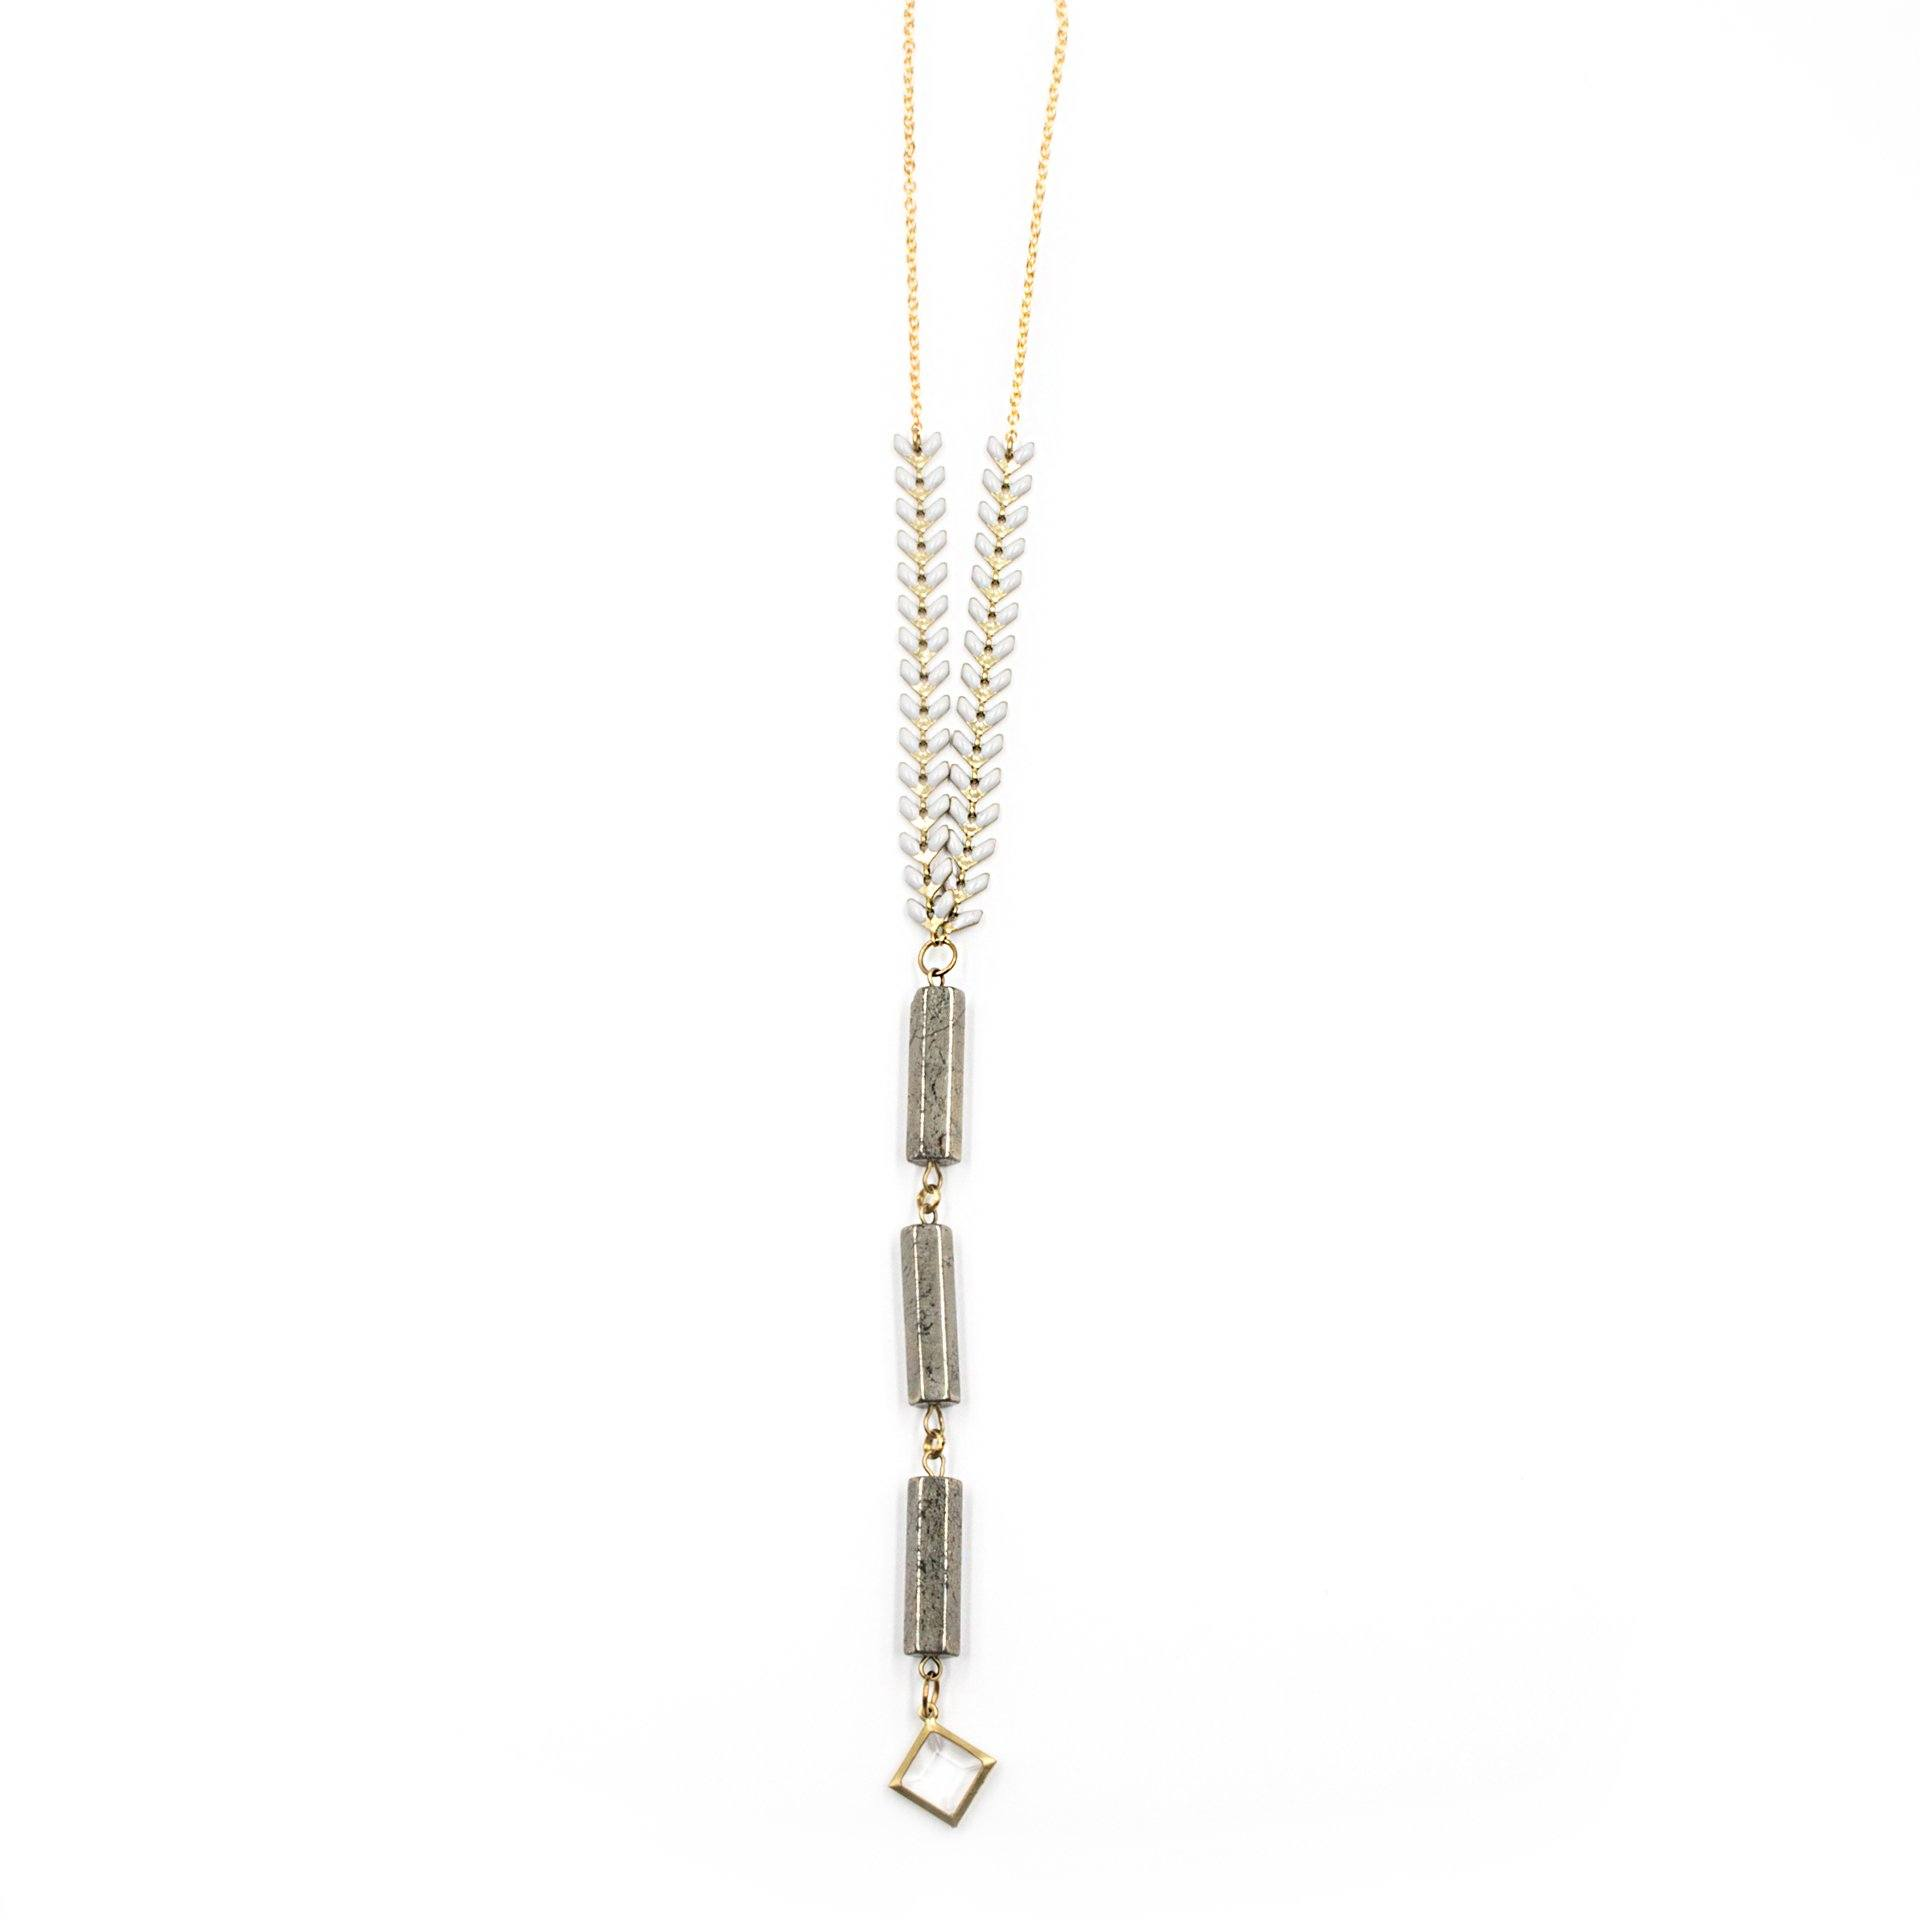 Mixed Metals Long Pendant Necklace - Arlo and Arrows